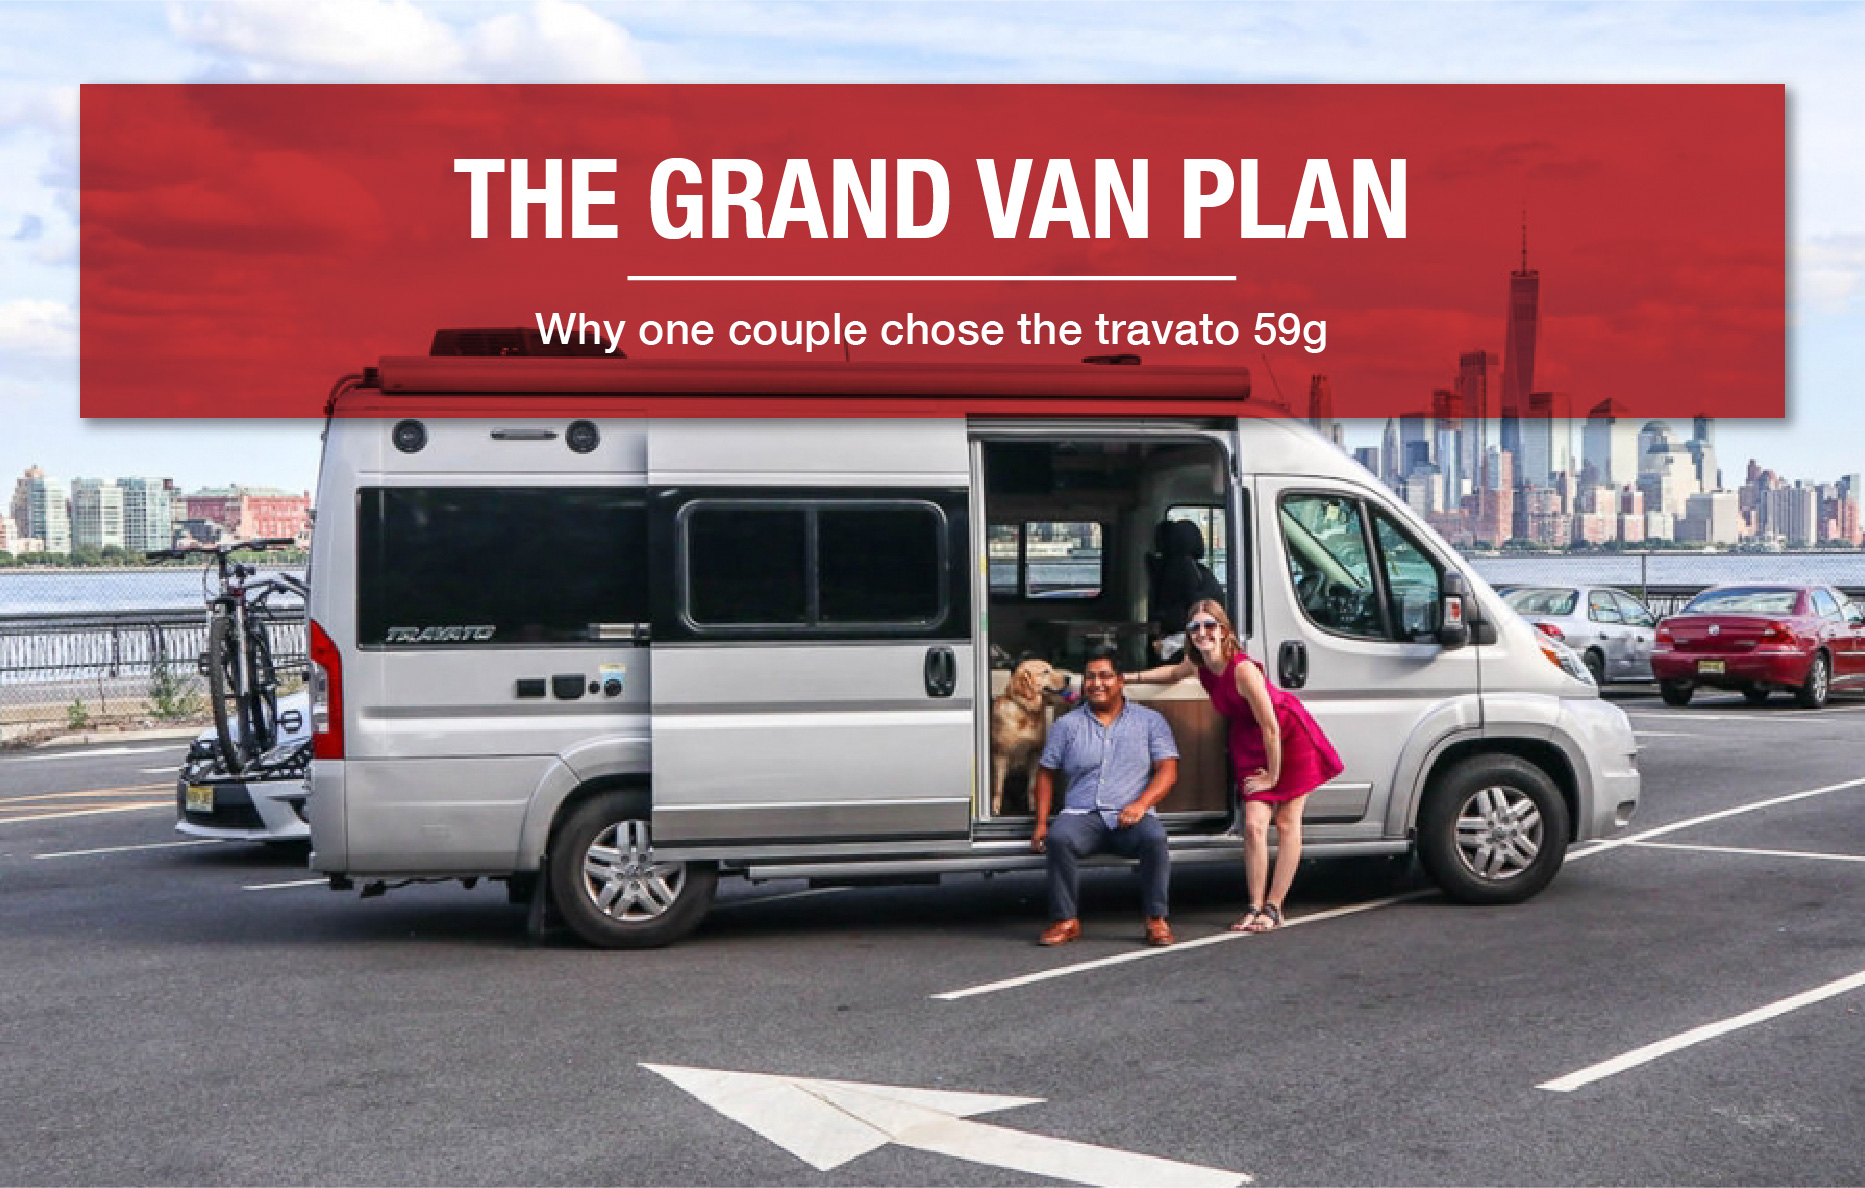 The Grand Van Plan: Why One Couple Chose the Travato 59g  Our last vacation of 2015 was a trip to visit friends in Hawaii for Christmas. During this trip, we had a lot of fun, but were also disgruntled with the amount that we had to pack into our trip due to the limited…  03/12/18